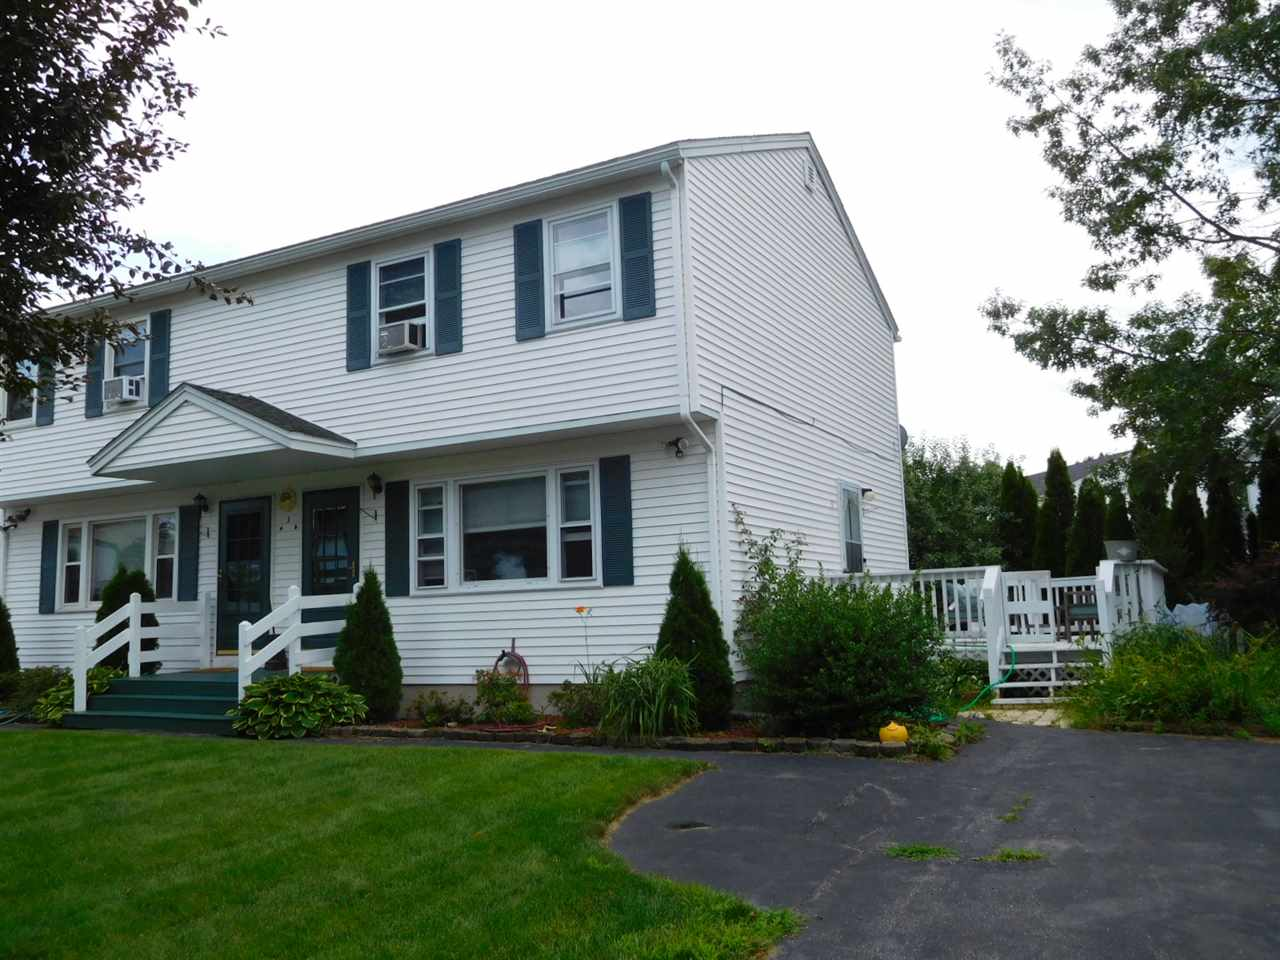 Photo of 3R NORMAN Drive Derry NH 03038